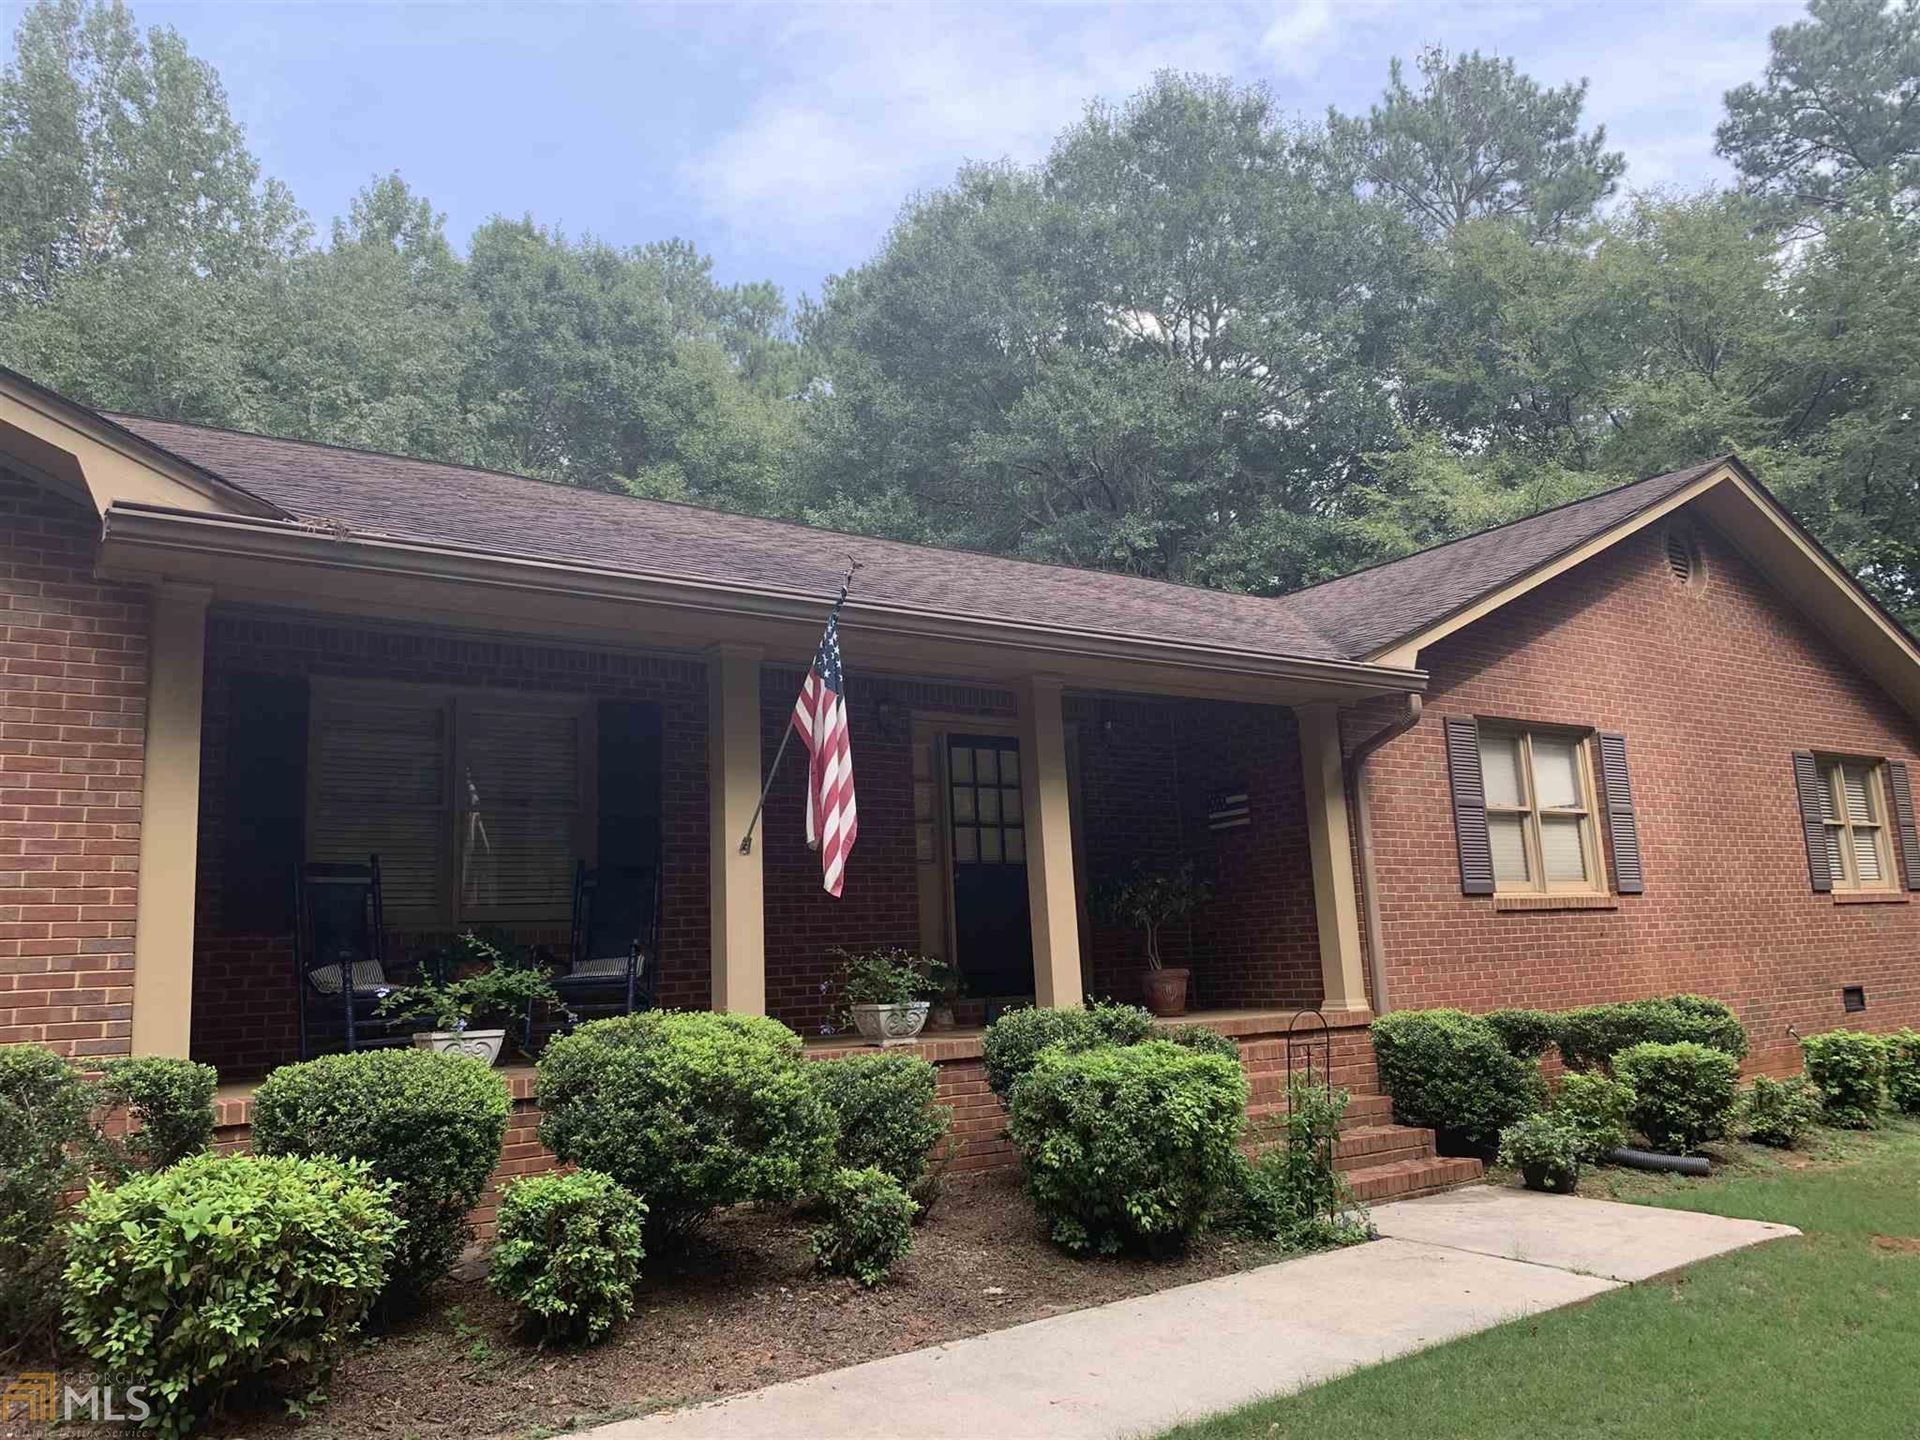 30 Doubletree, Stockbridge, GA 30281 - MLS#: 8857198